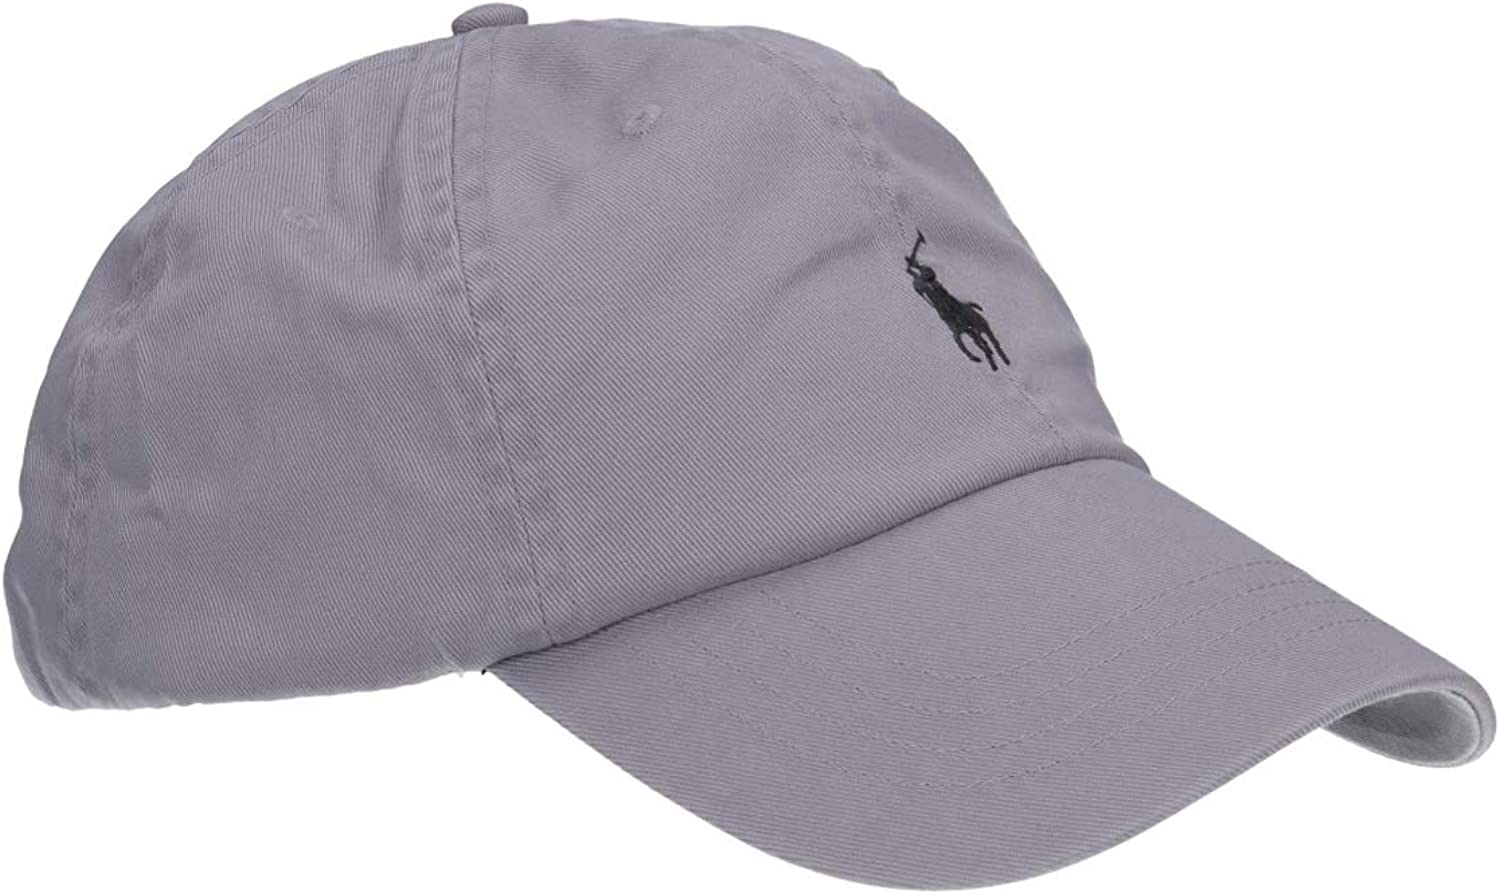 Gorra Curva Polo RALPH LAUREN Gris Unica Gris: Amazon.es: Zapatos ...